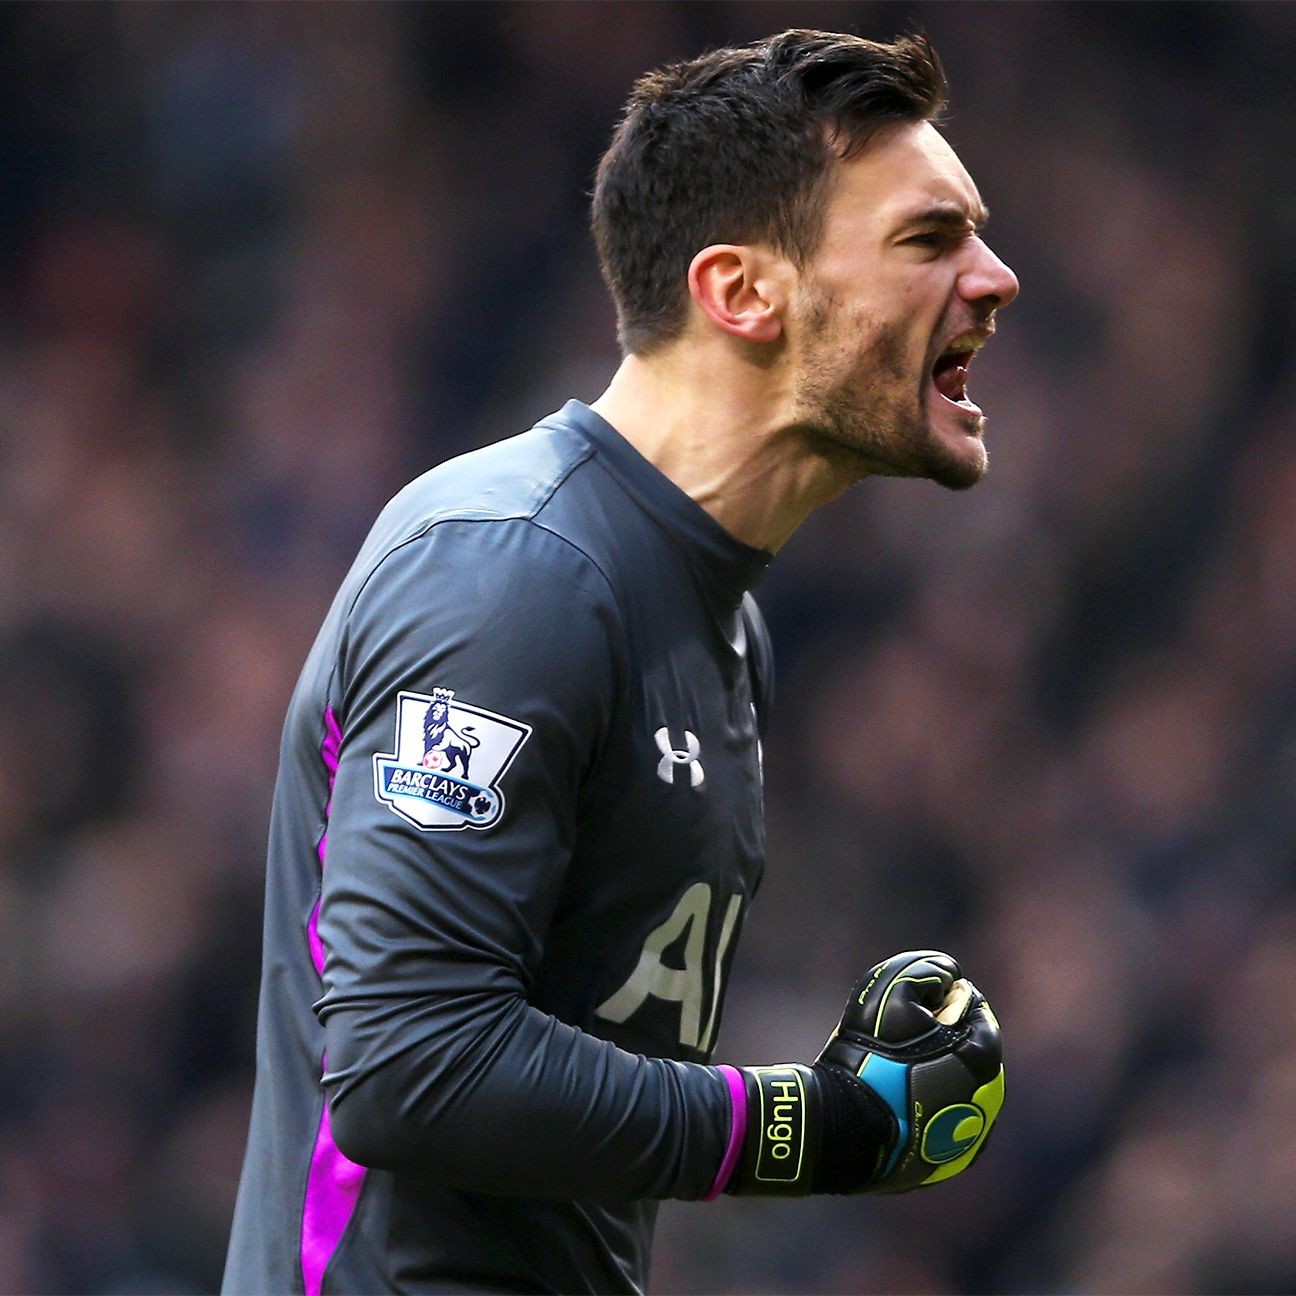 Spurs goalkeeper Hugo Lloris leads the Premier League with 54 diving saves.